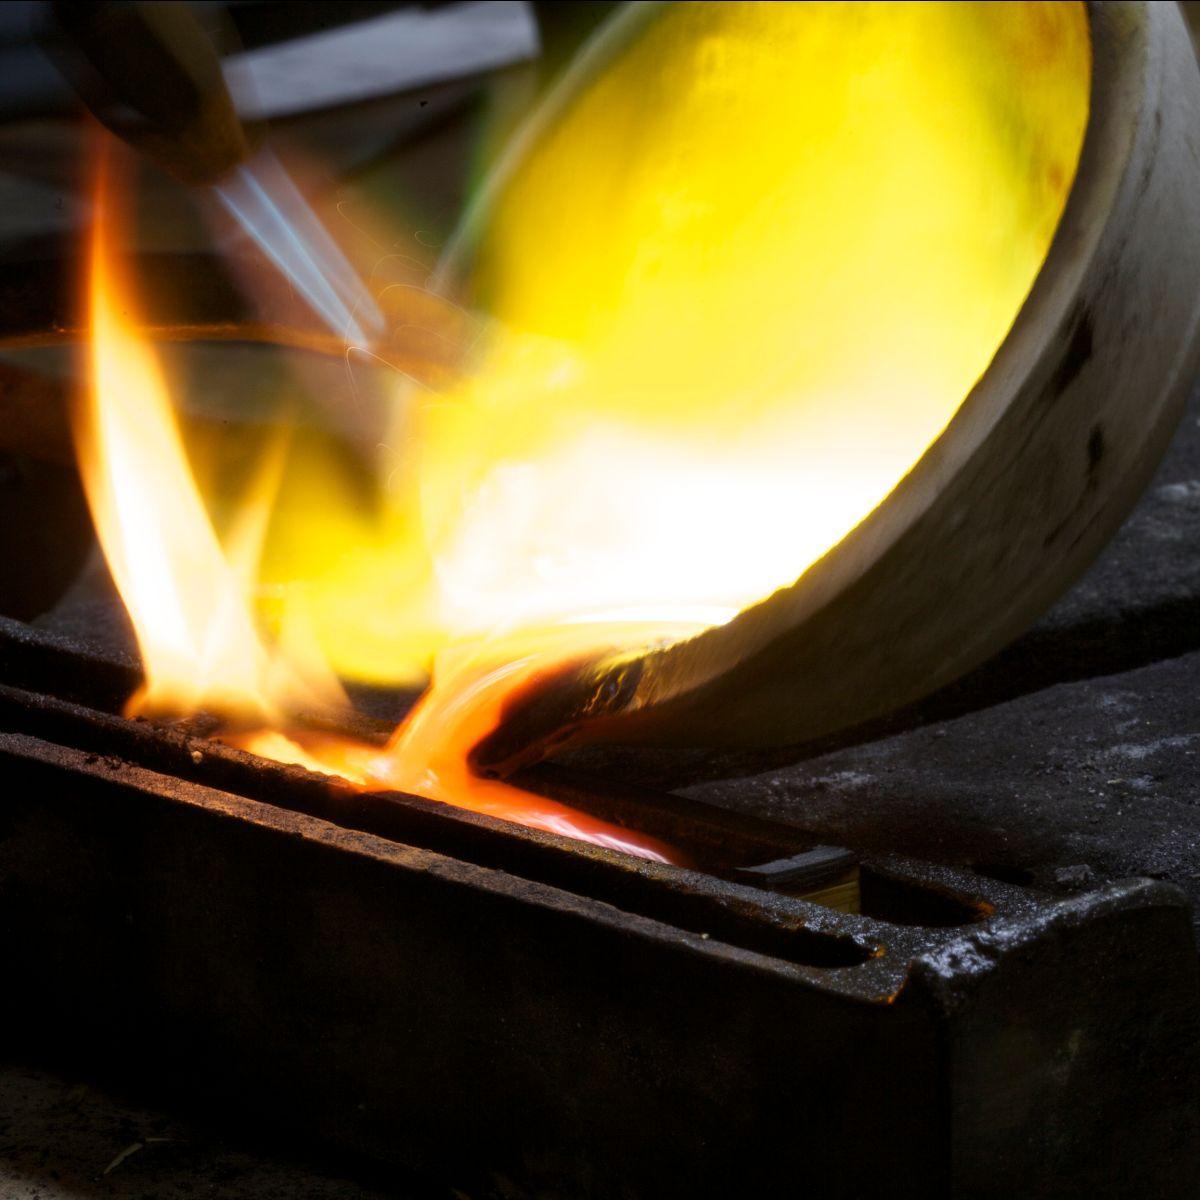 Melting gold and pouring into ingot mould.